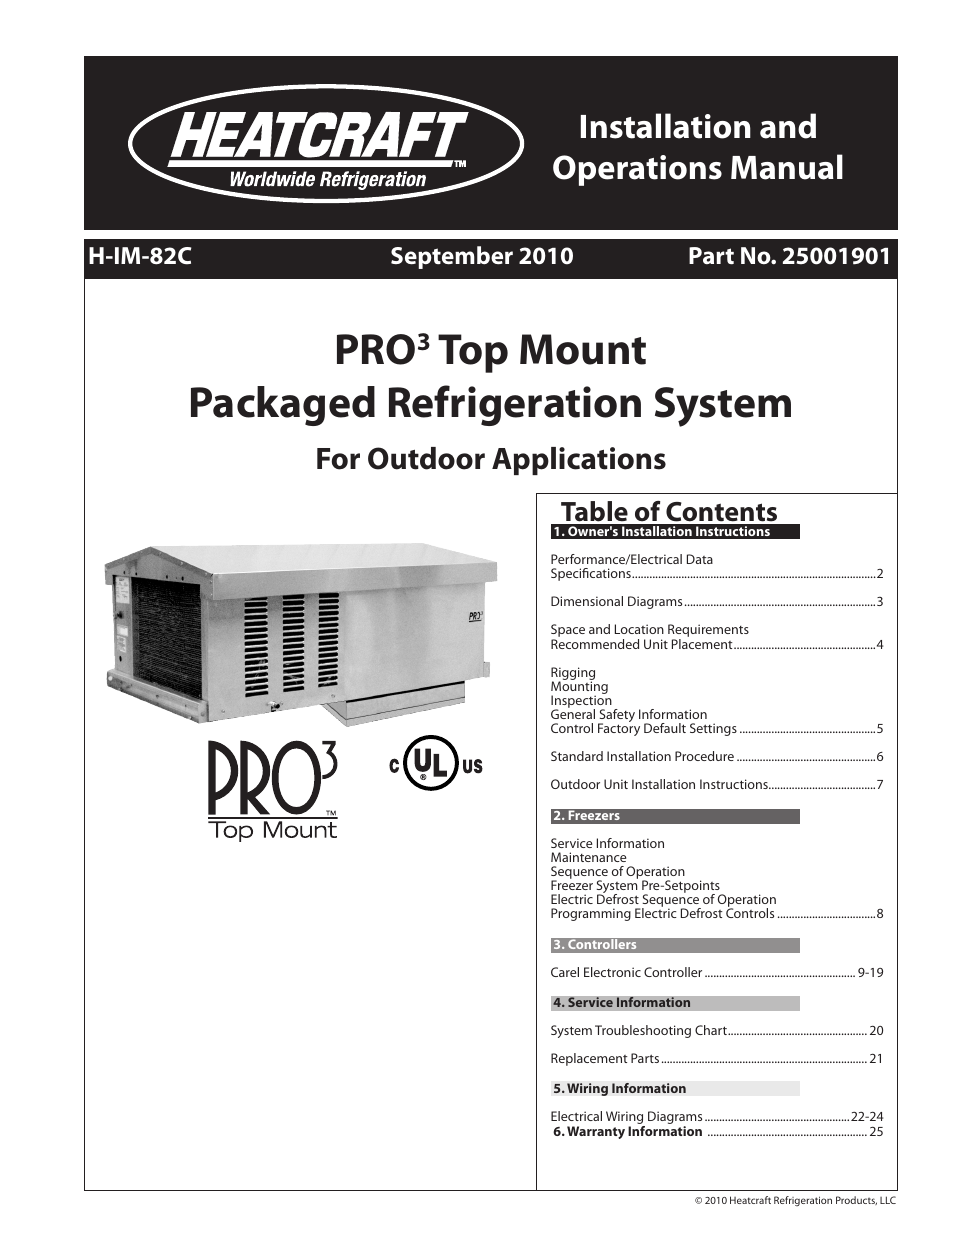 Heatcraft Refrigeration Products Pro Top Mount H